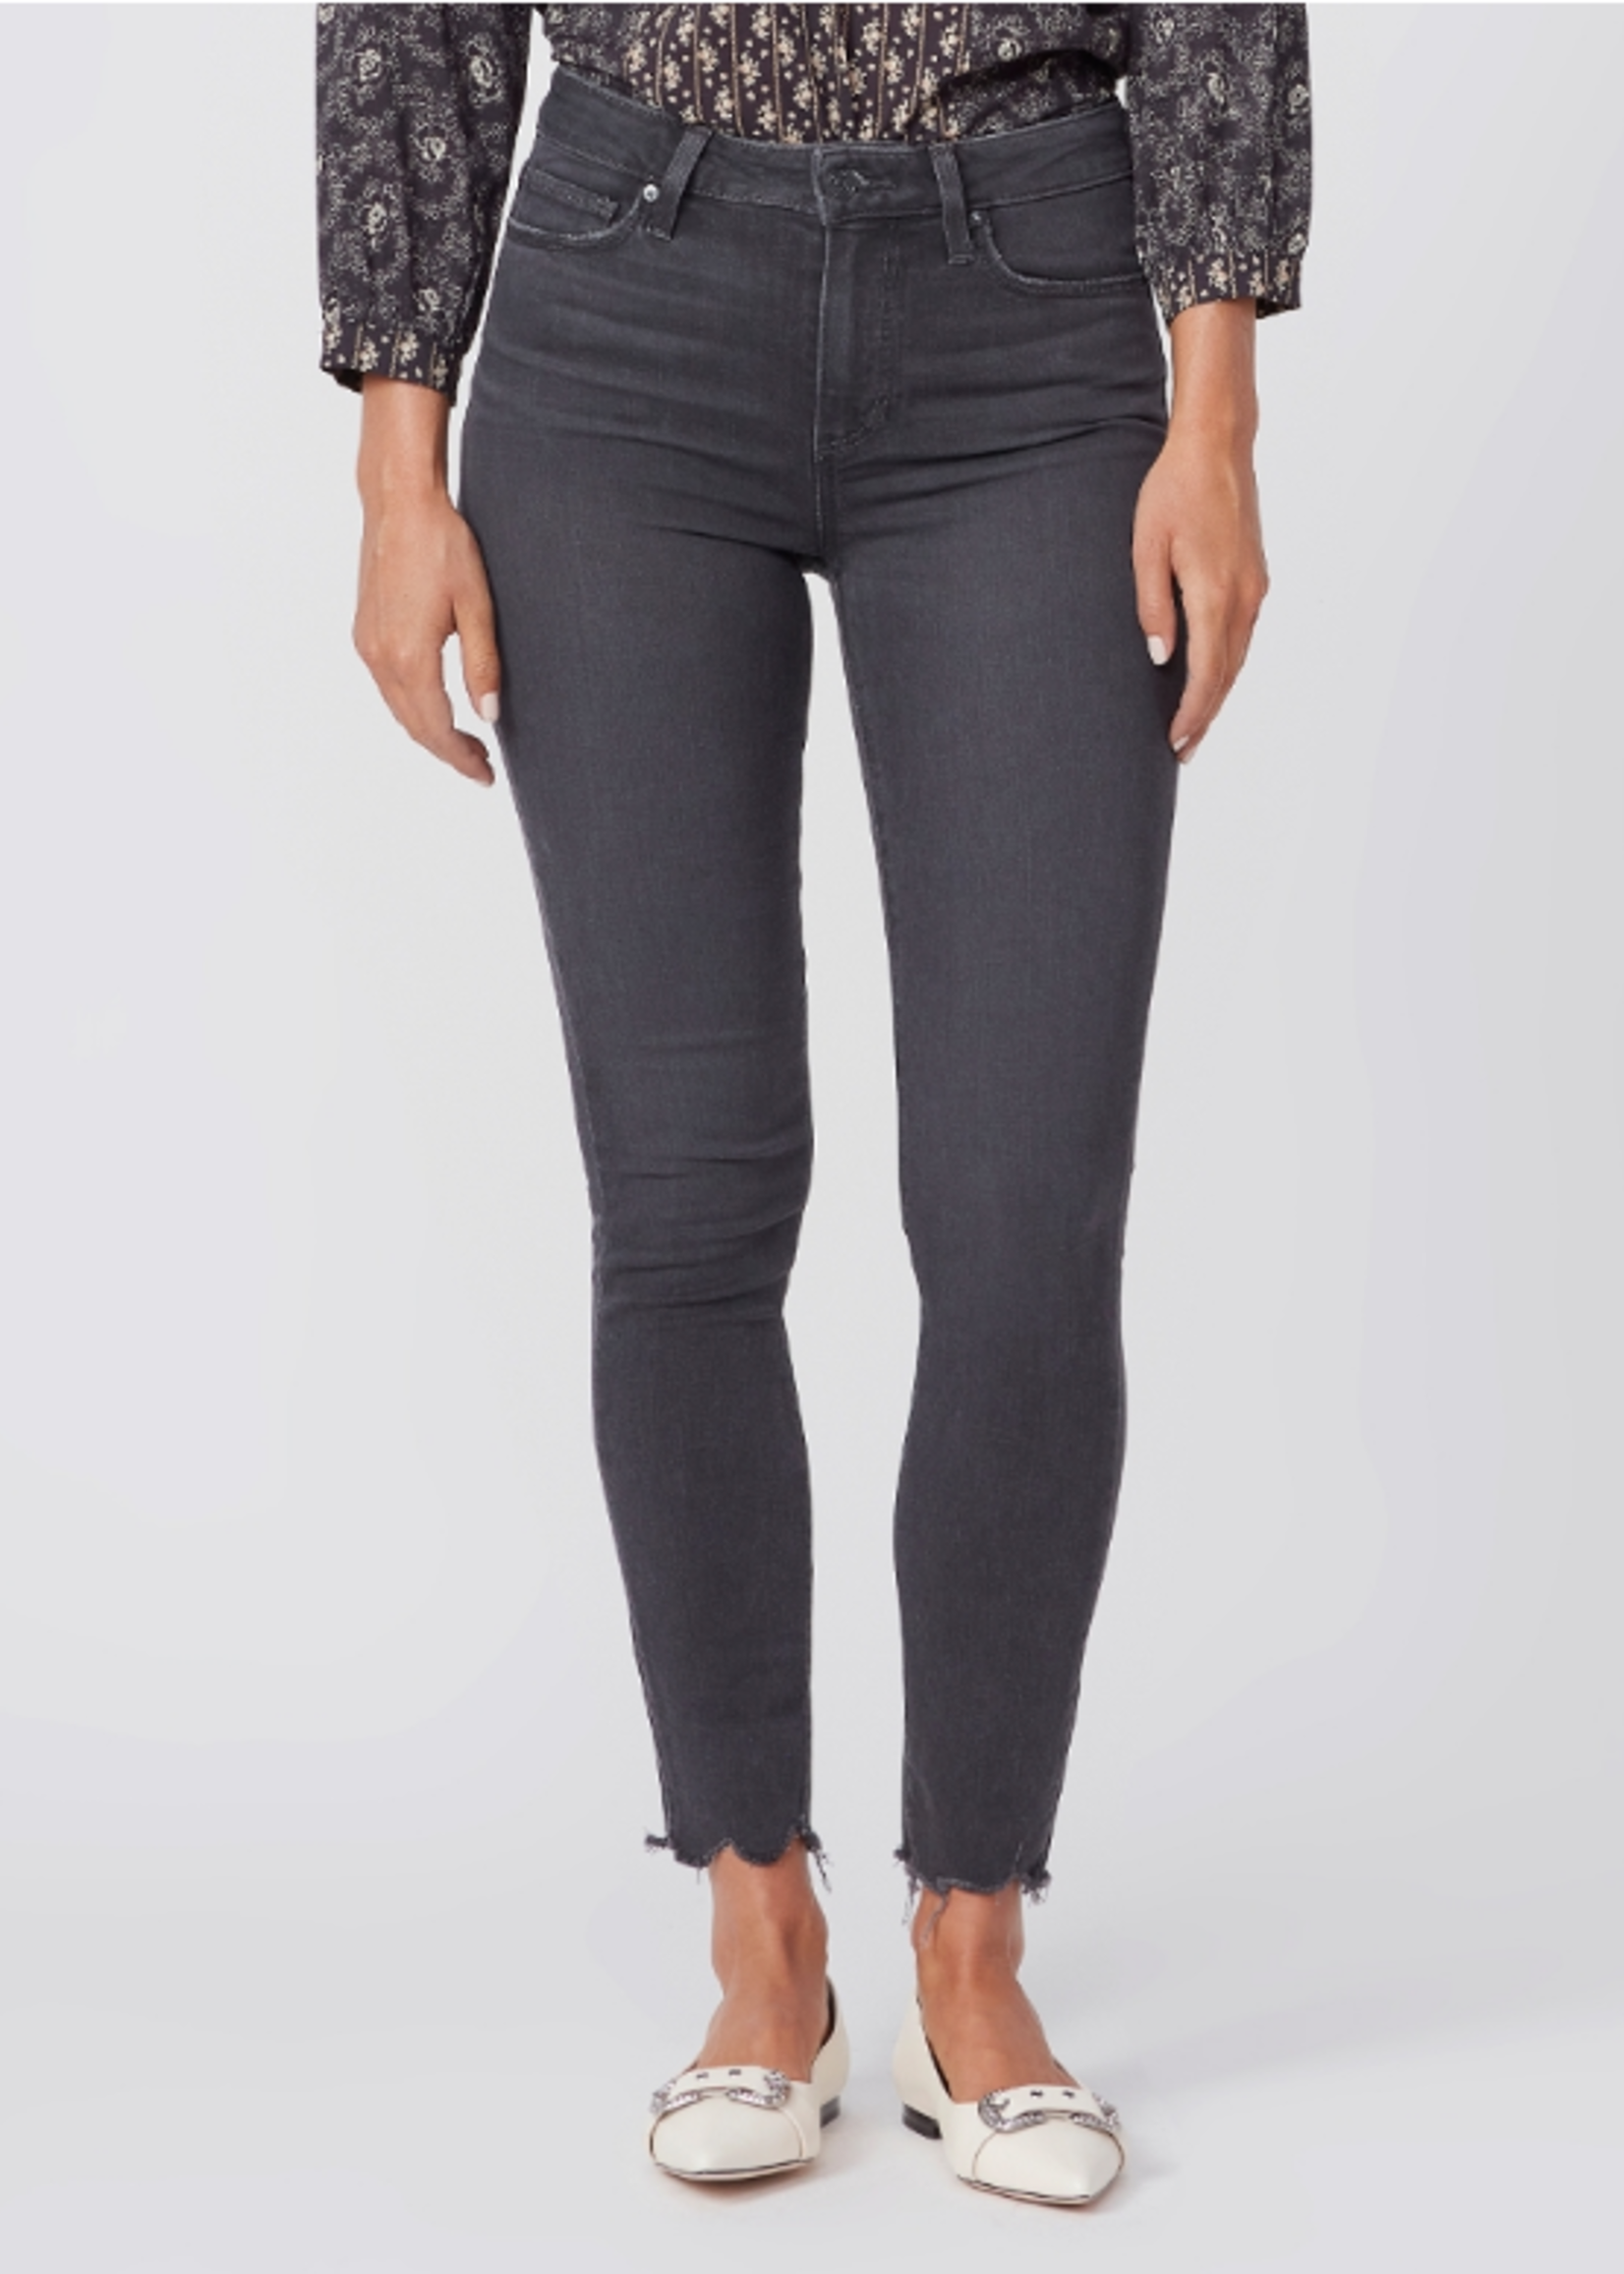 Paige Hoxton Ankle - Smokey Distressed